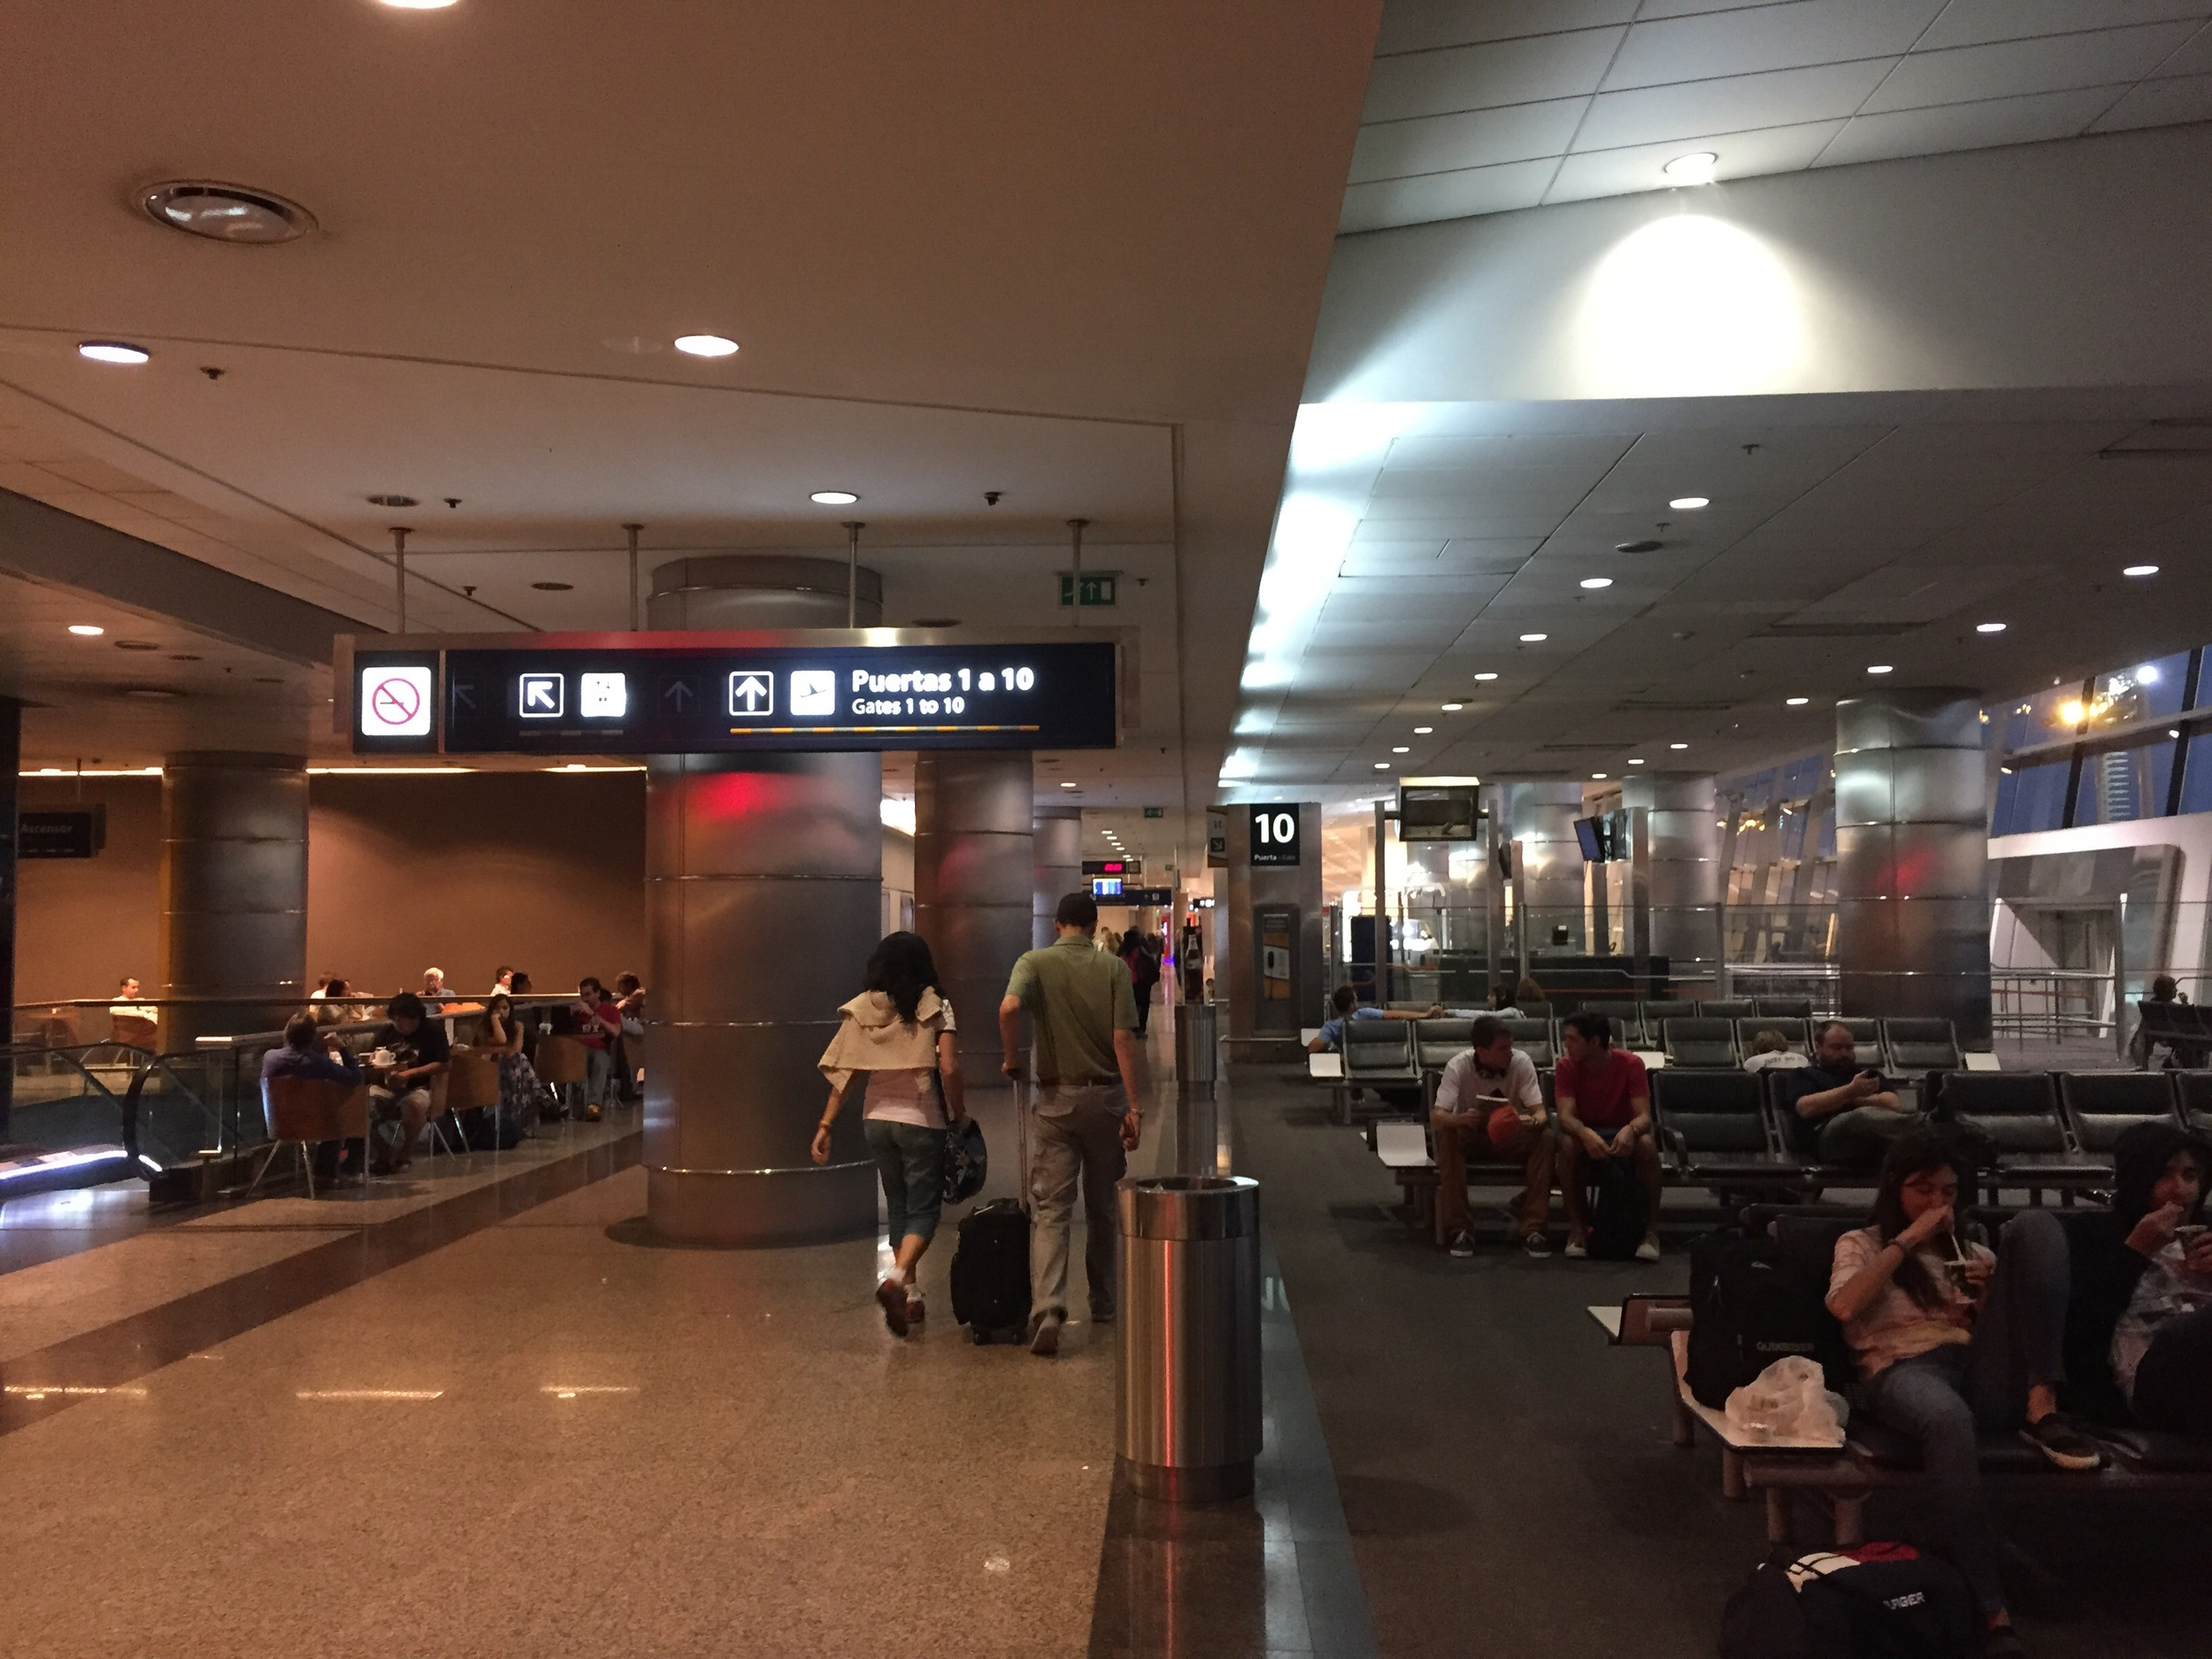 Aeroparque, the smaller yer busier airport much more centrally located in Buenos Aires. Remind you of anywhere?